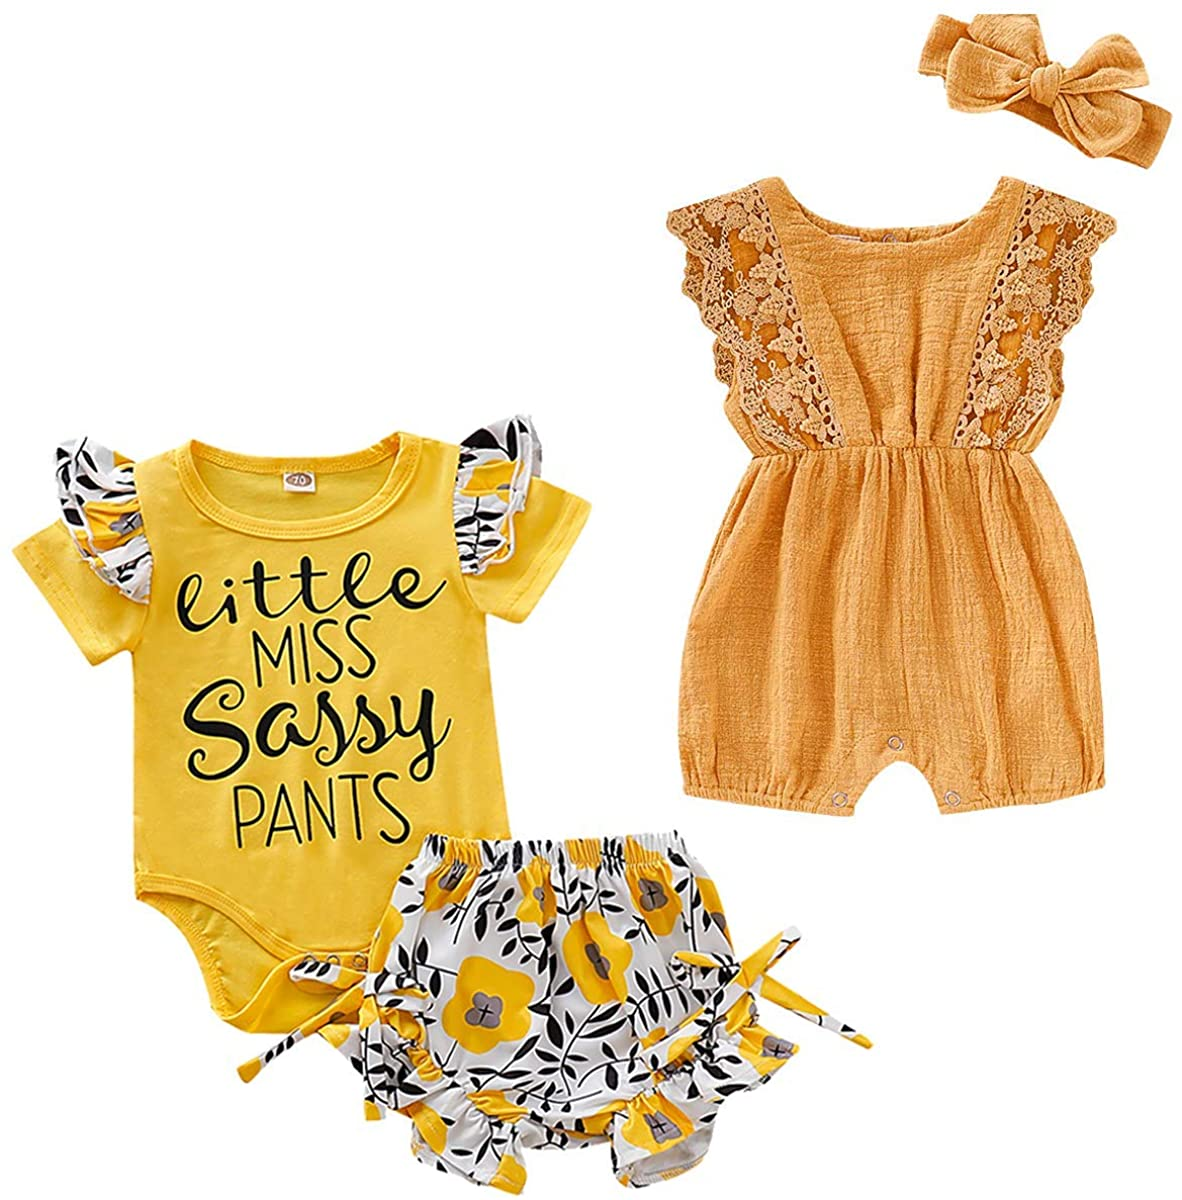 Baby Girl Kids Clothes Outfits Ruffle Romper Floral Pants Bowknot Clothing Set 12-18 Months